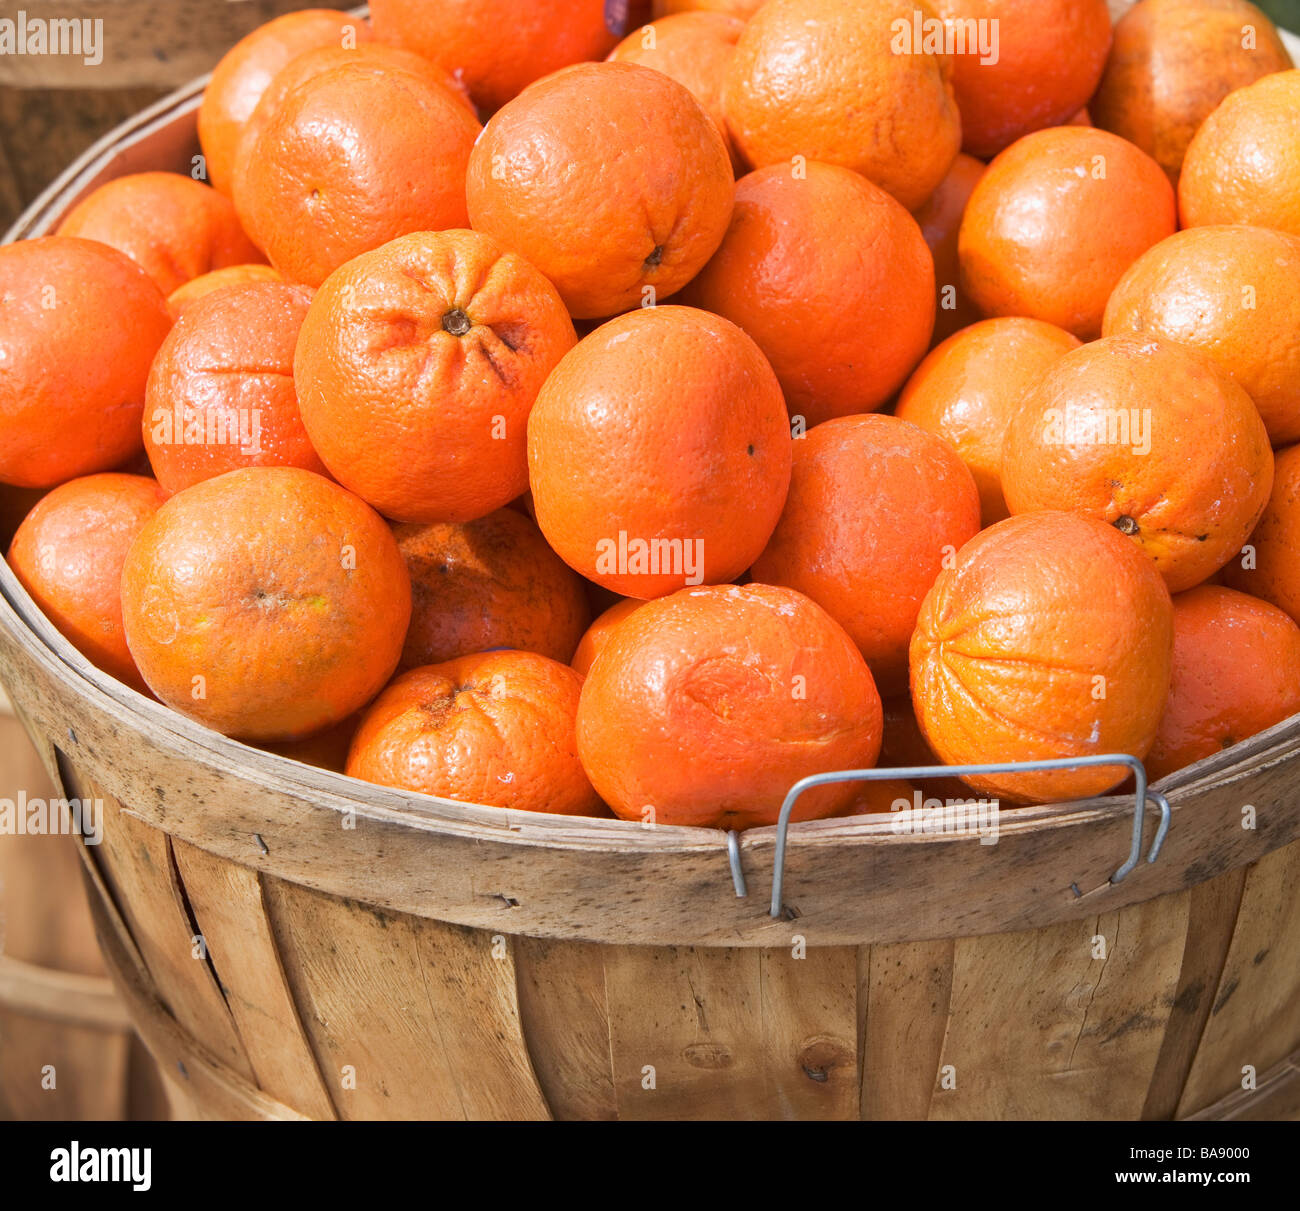 Oranges in a basket at a fruit stand - Stock Image